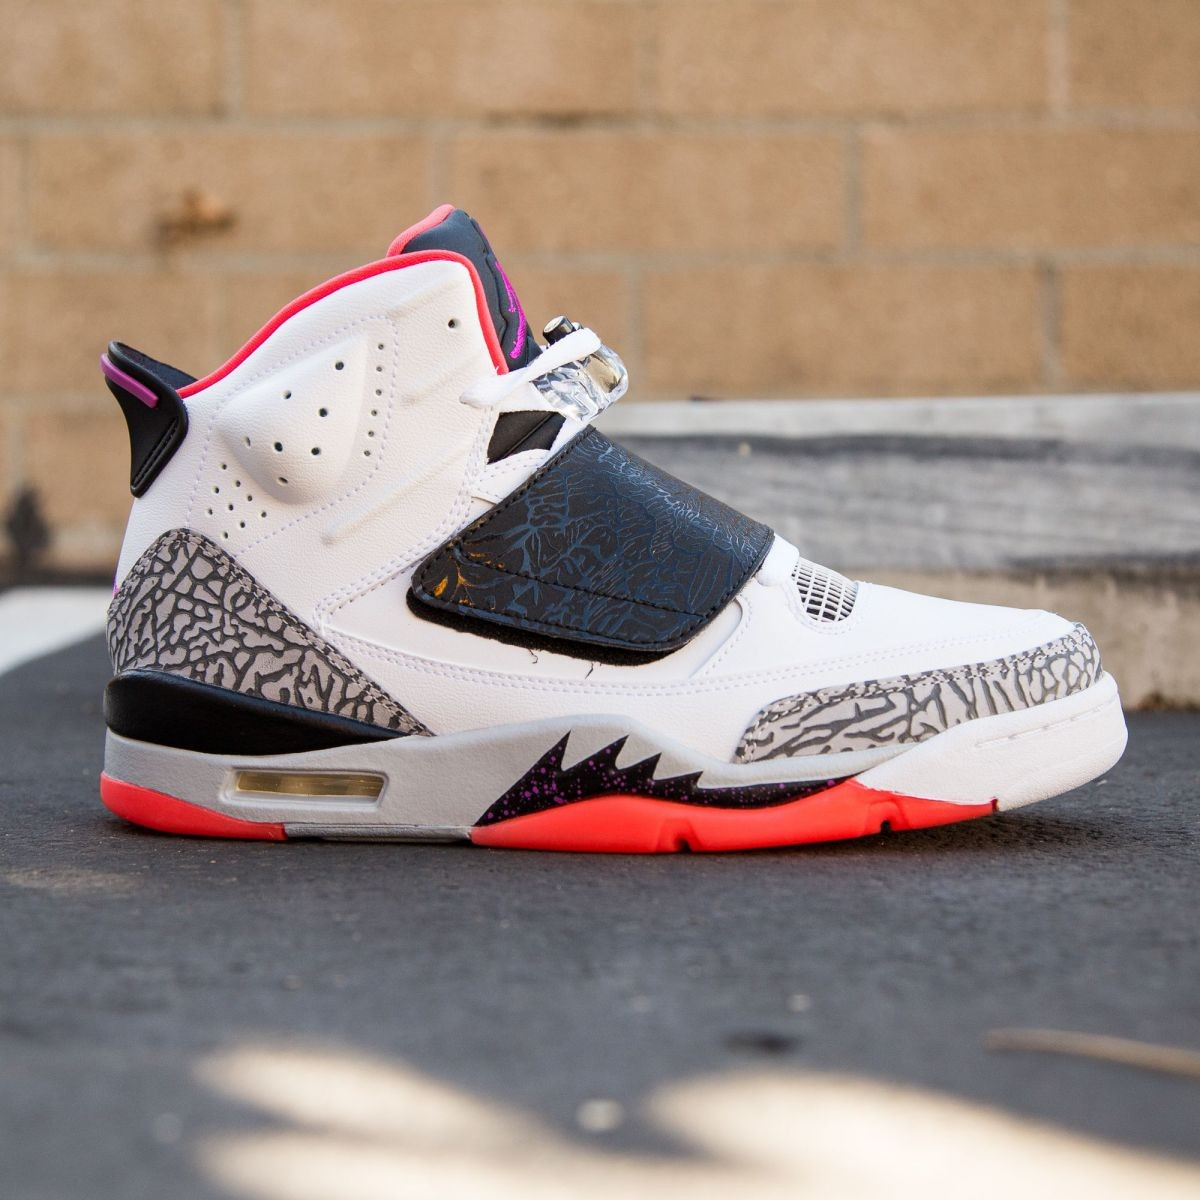 the latest 649a7 44360 Jordan Men Air Jordan Son of Mars - Hot Lava white black wolf grey